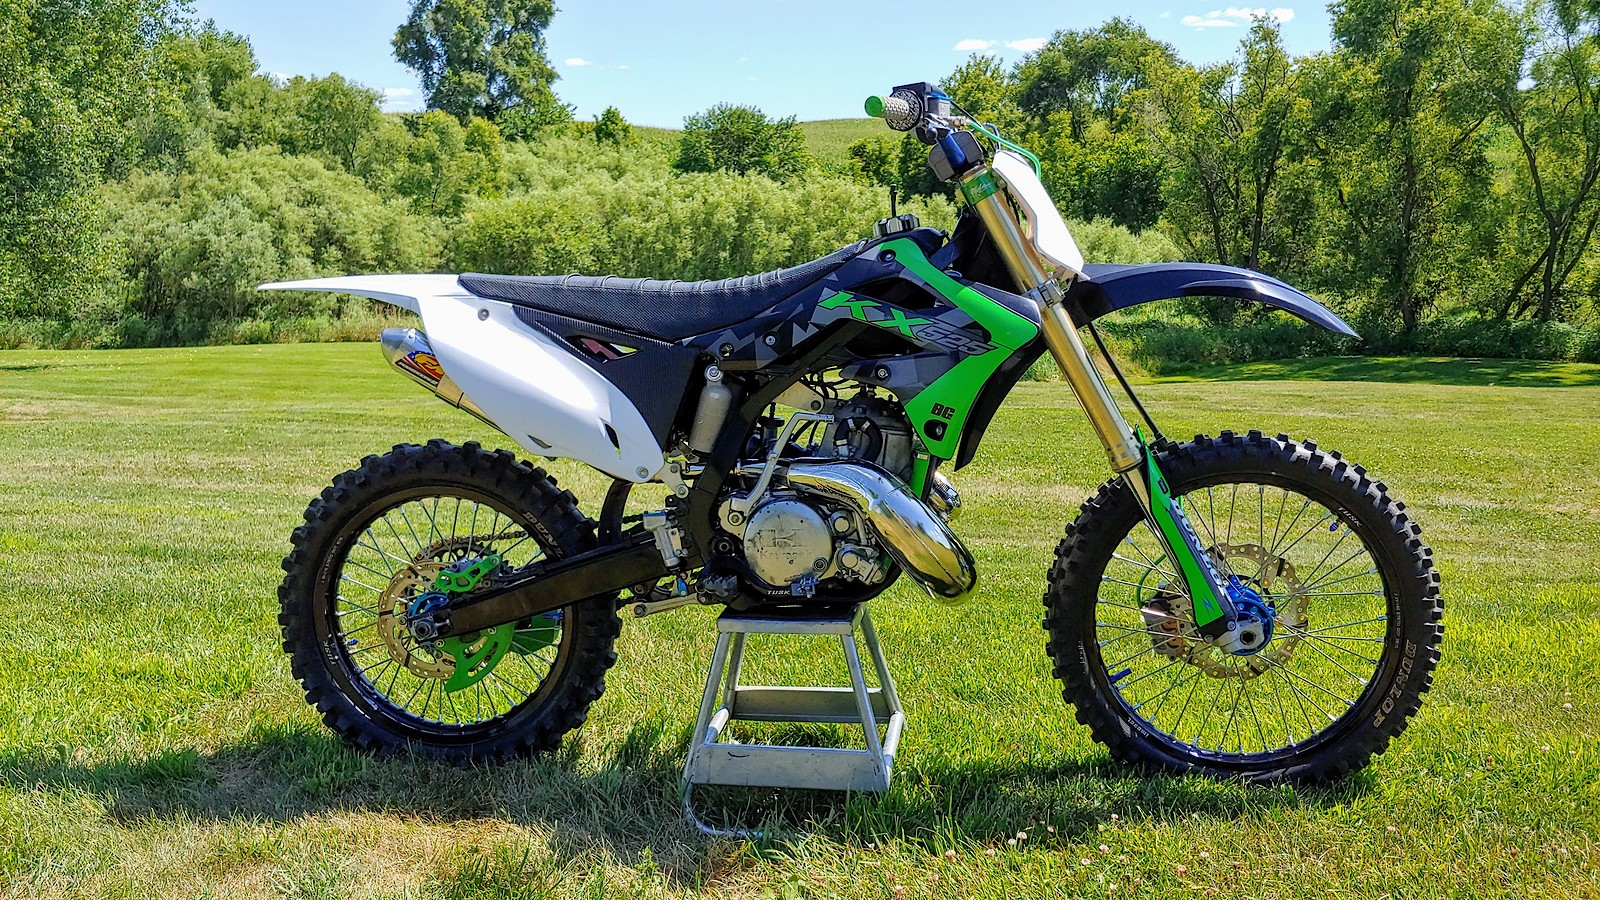 20190730 145304 HDR - grawesome104 - Motocross Pictures - Vital MX